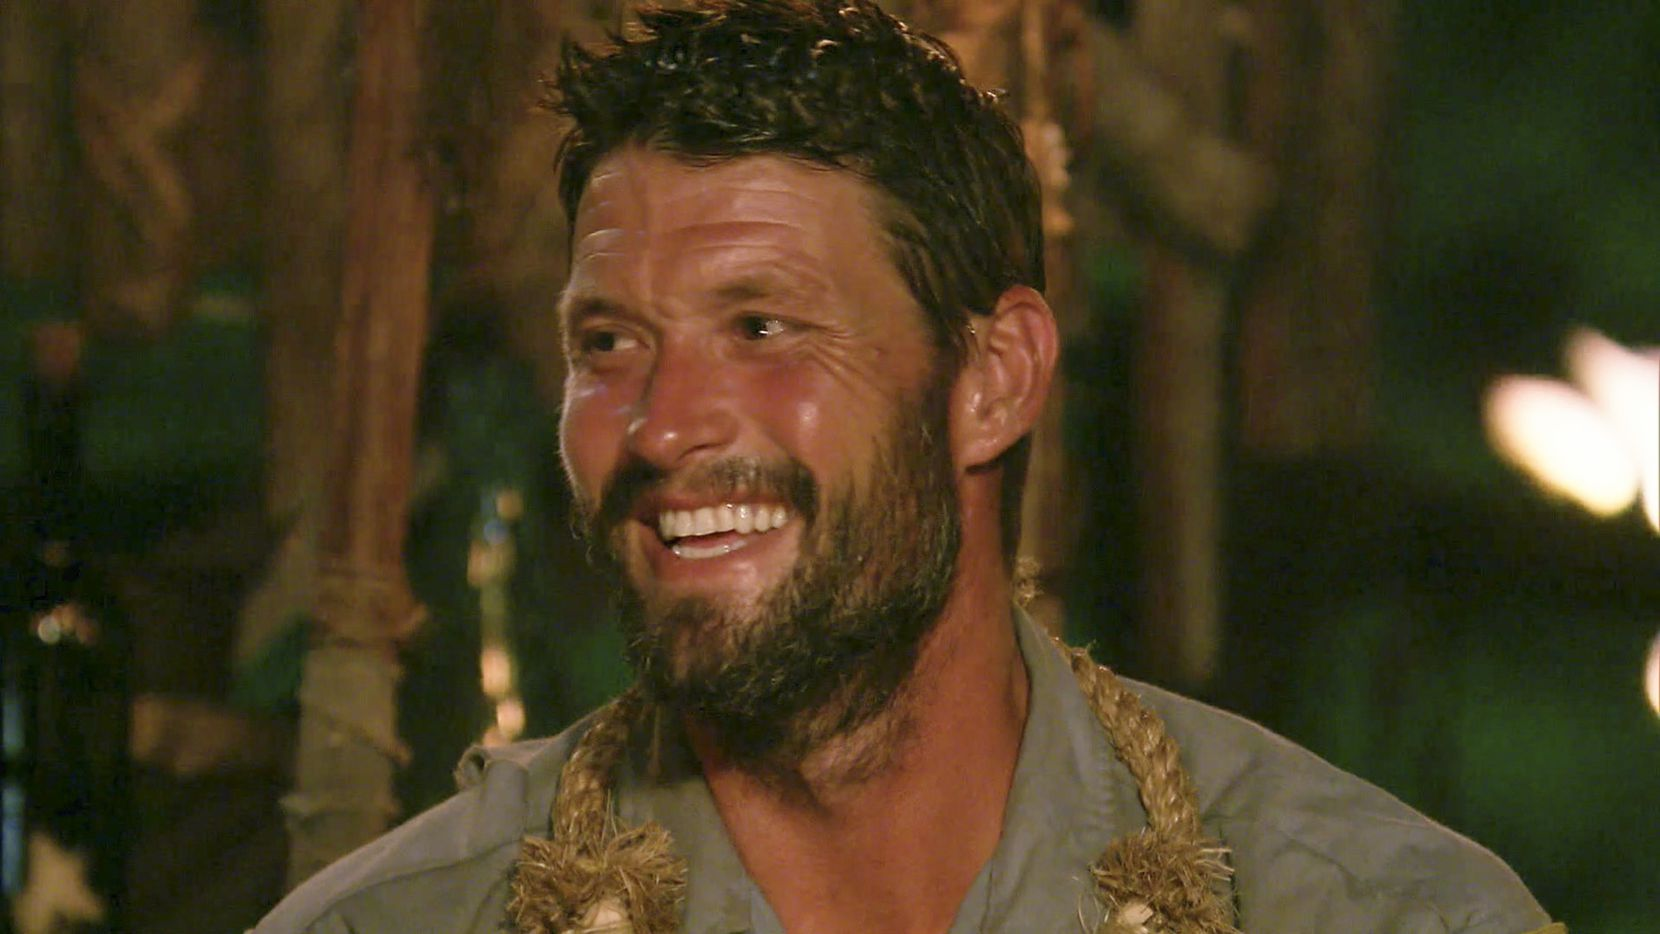 Mike Holloway at Tribal Council during the final episode.